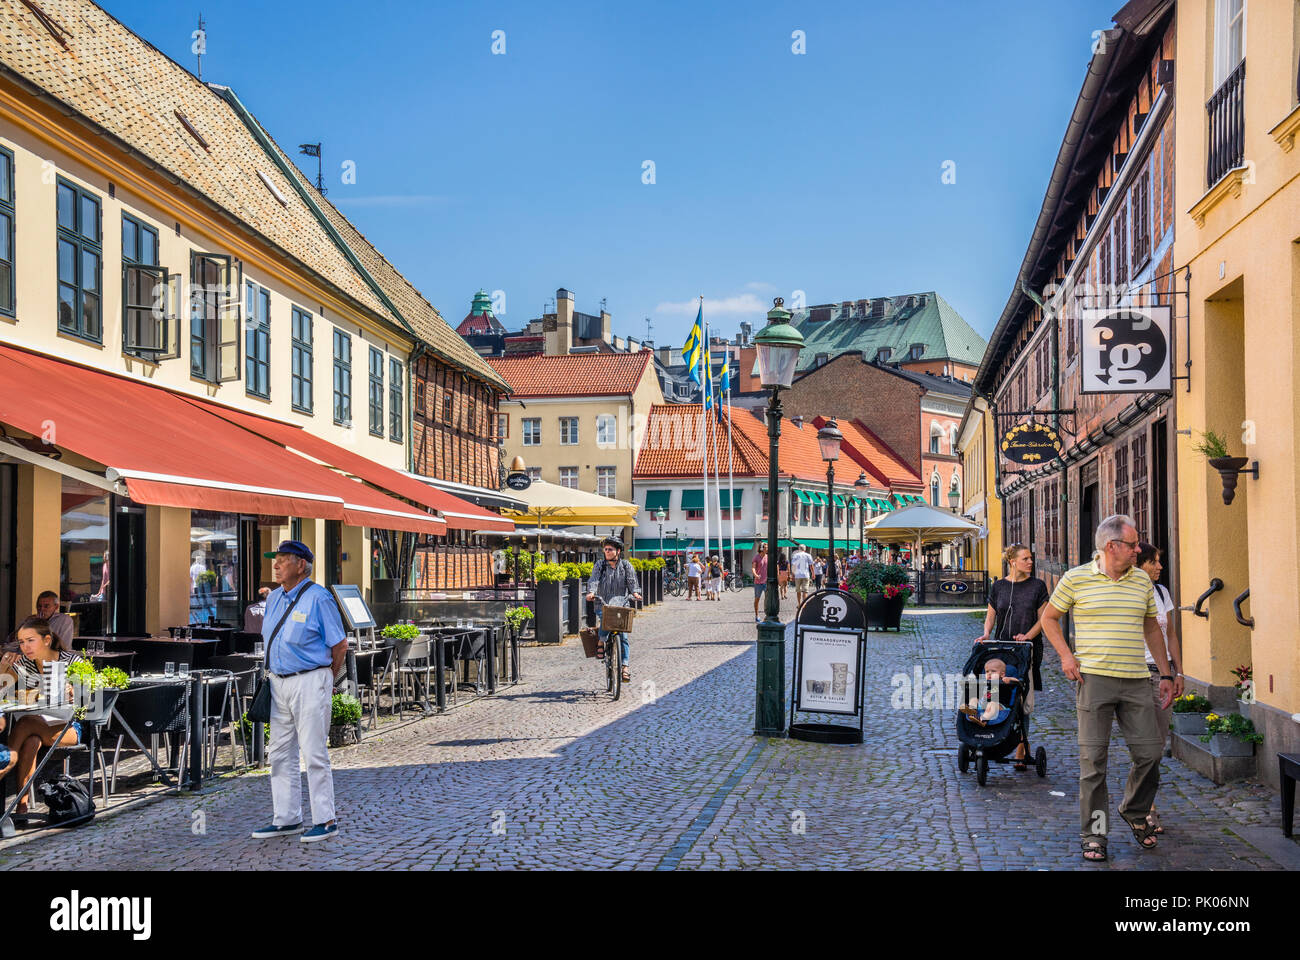 ancient half-timbered houses at Larochegatan, Lila Torg, Little Square in the historic old town of Malmö, Scania, Sweden - Stock Image